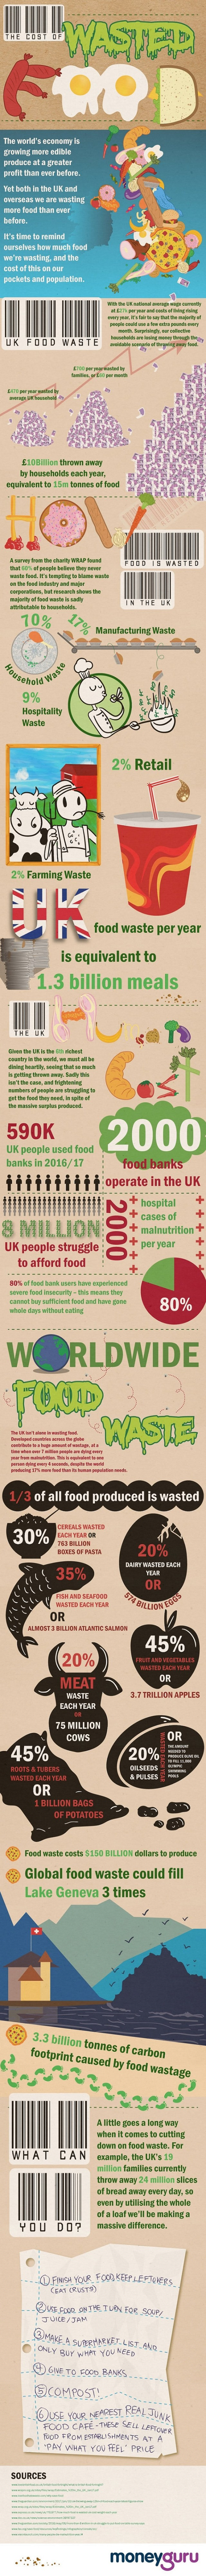 The Cost of Wasted Food